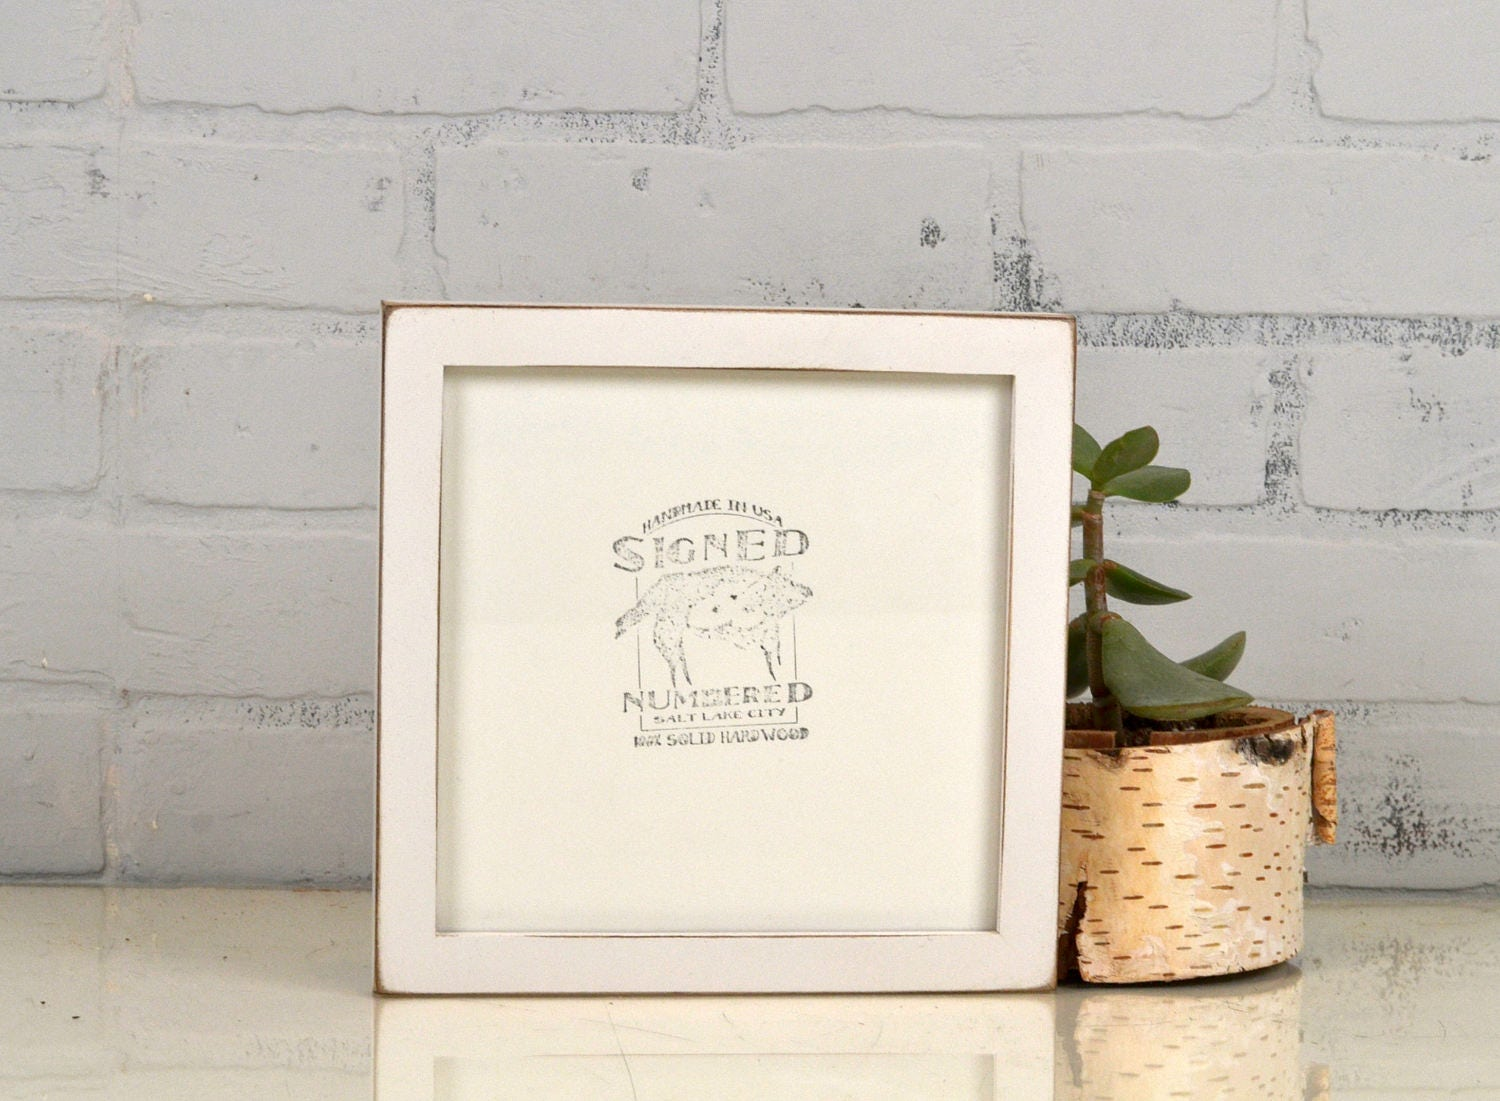 7x7 Square Picture Frame in Peewee Style with Vintage White Finish ...